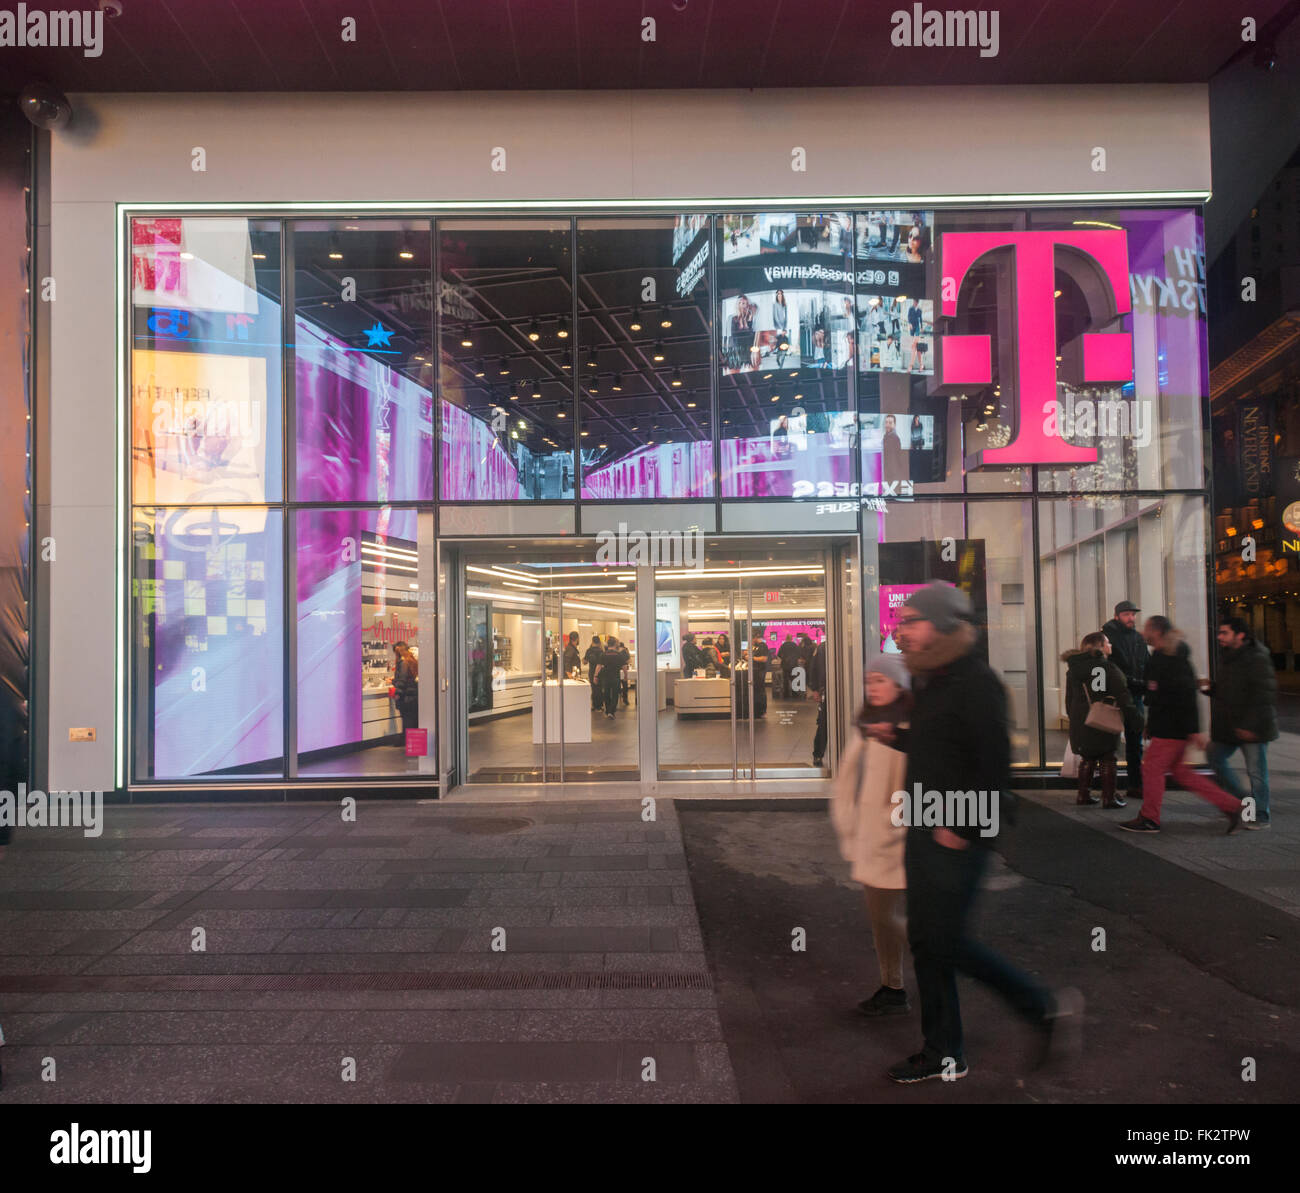 A spanking brand new T-Mobile mobile phone store opens in